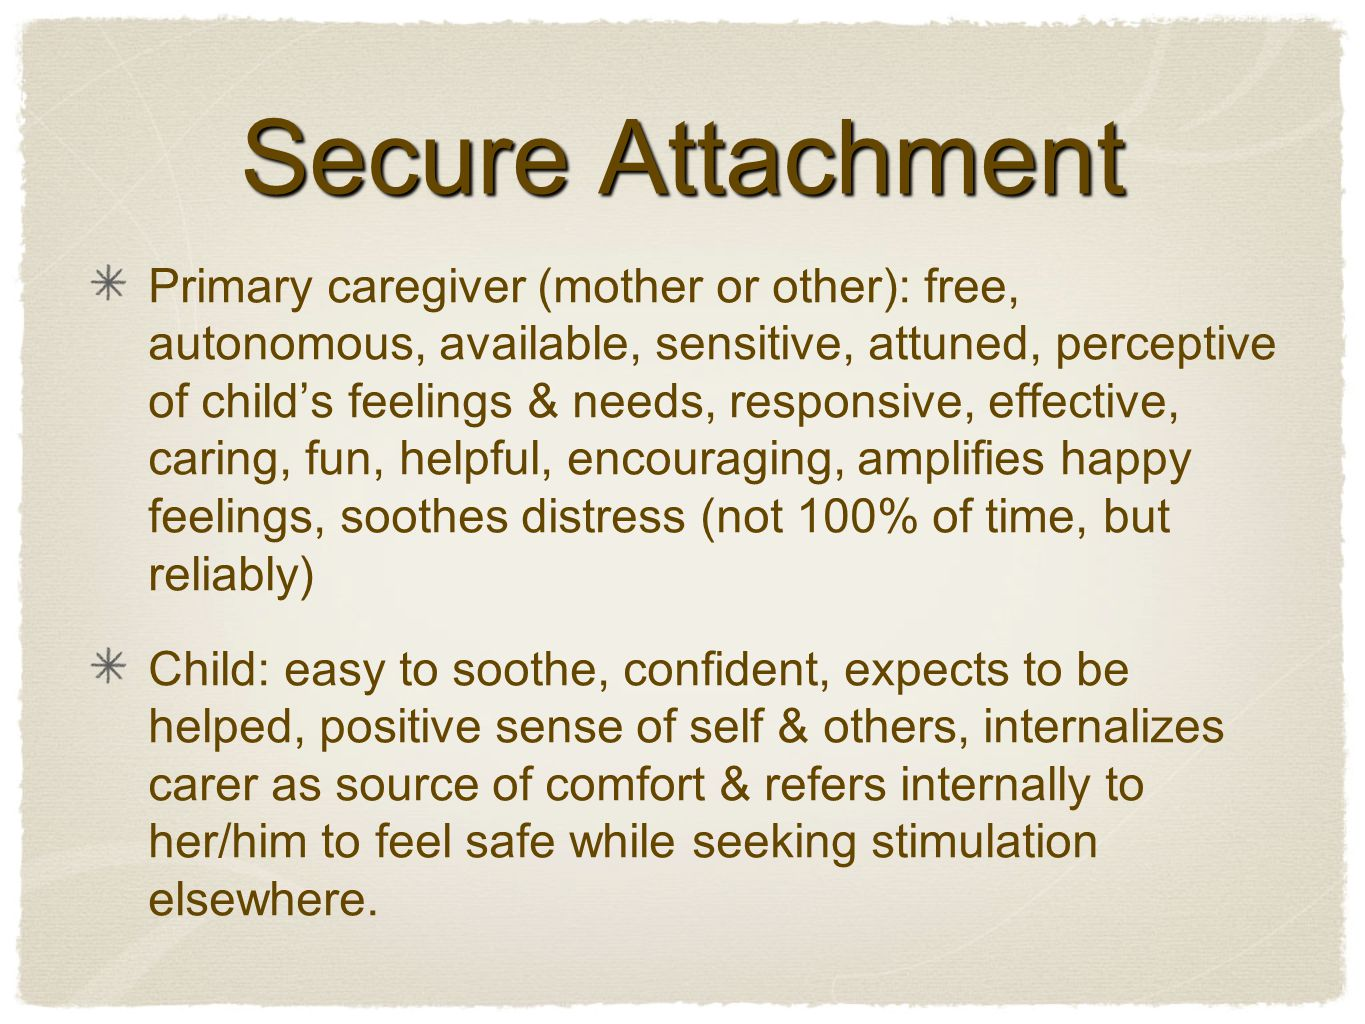 Secure Attachment Primary caregiver (mother or other): free, autonomous, available, sensitive, attuned, perceptive of child's feelings & needs, responsive, effective, caring, fun, helpful, encouraging, amplifies happy feelings, soothes distress (not 100% of time, but reliably) Child: easy to soothe, confident, expects to be helped, positive sense of self & others, internalizes carer as source of comfort & refers internally to her/him to feel safe while seeking stimulation elsewhere.